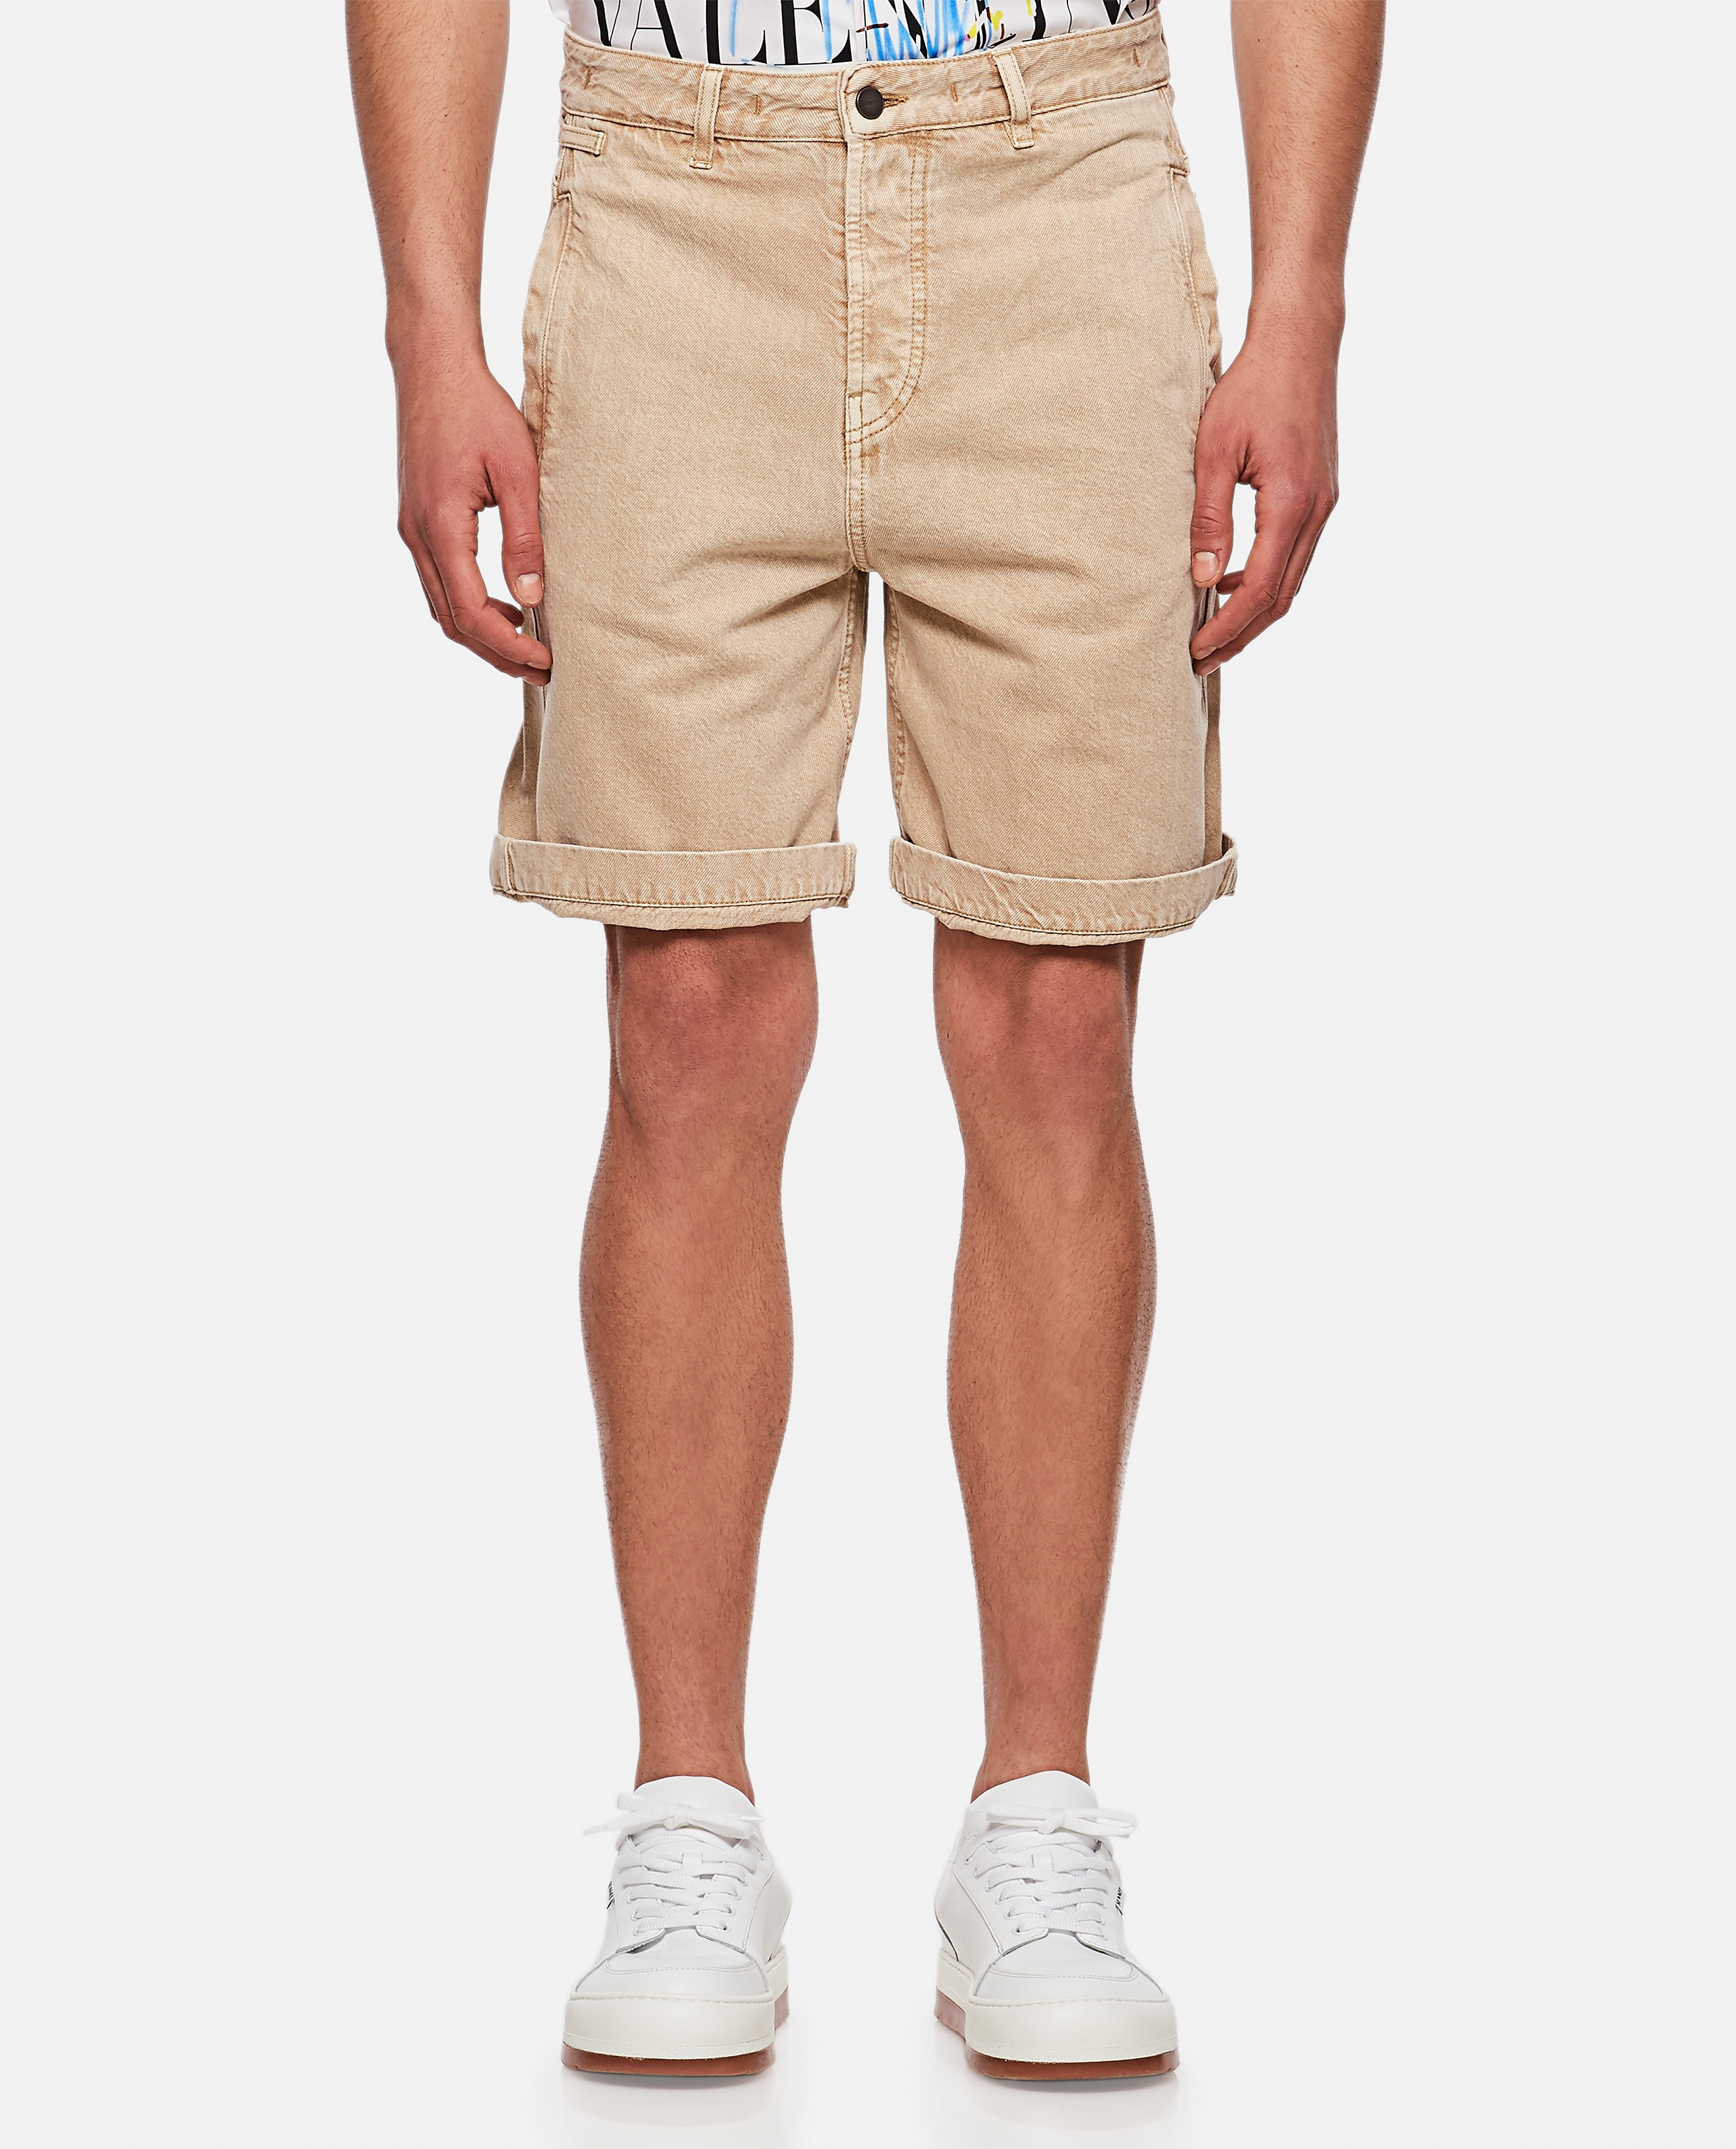 Le short de Nîmes Casual denim shorts Men Jacquemus 000293900043260 1